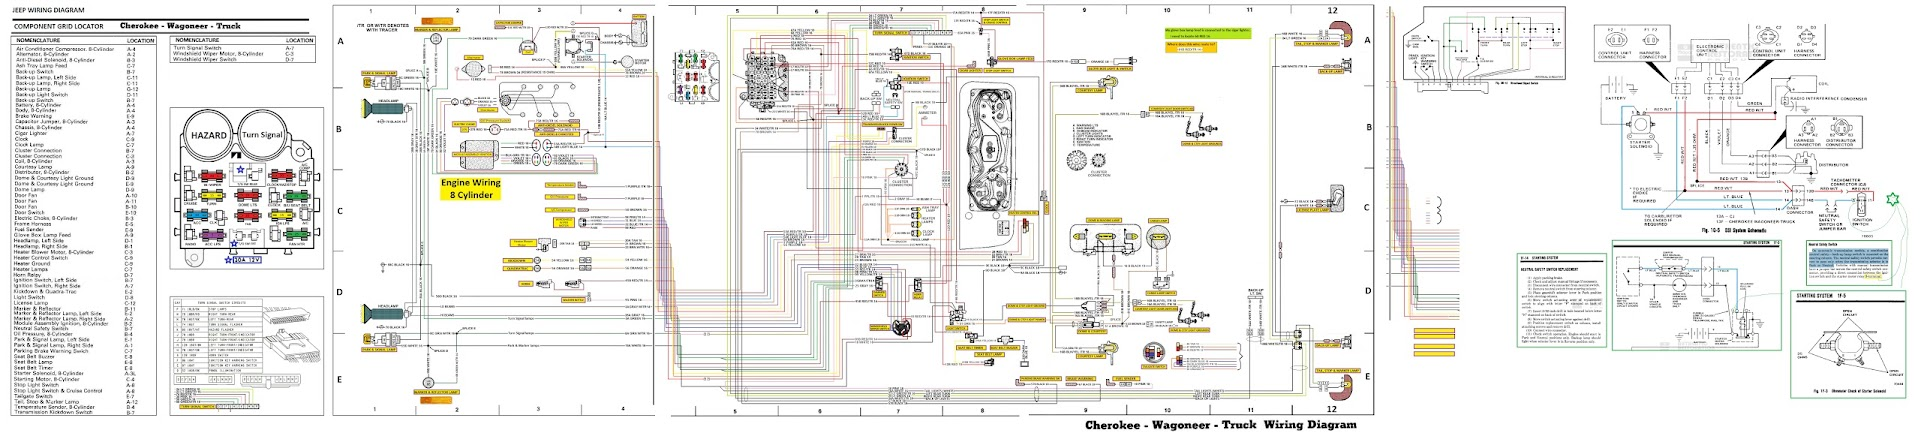 hight resolution of 1978 ih wiring diagram